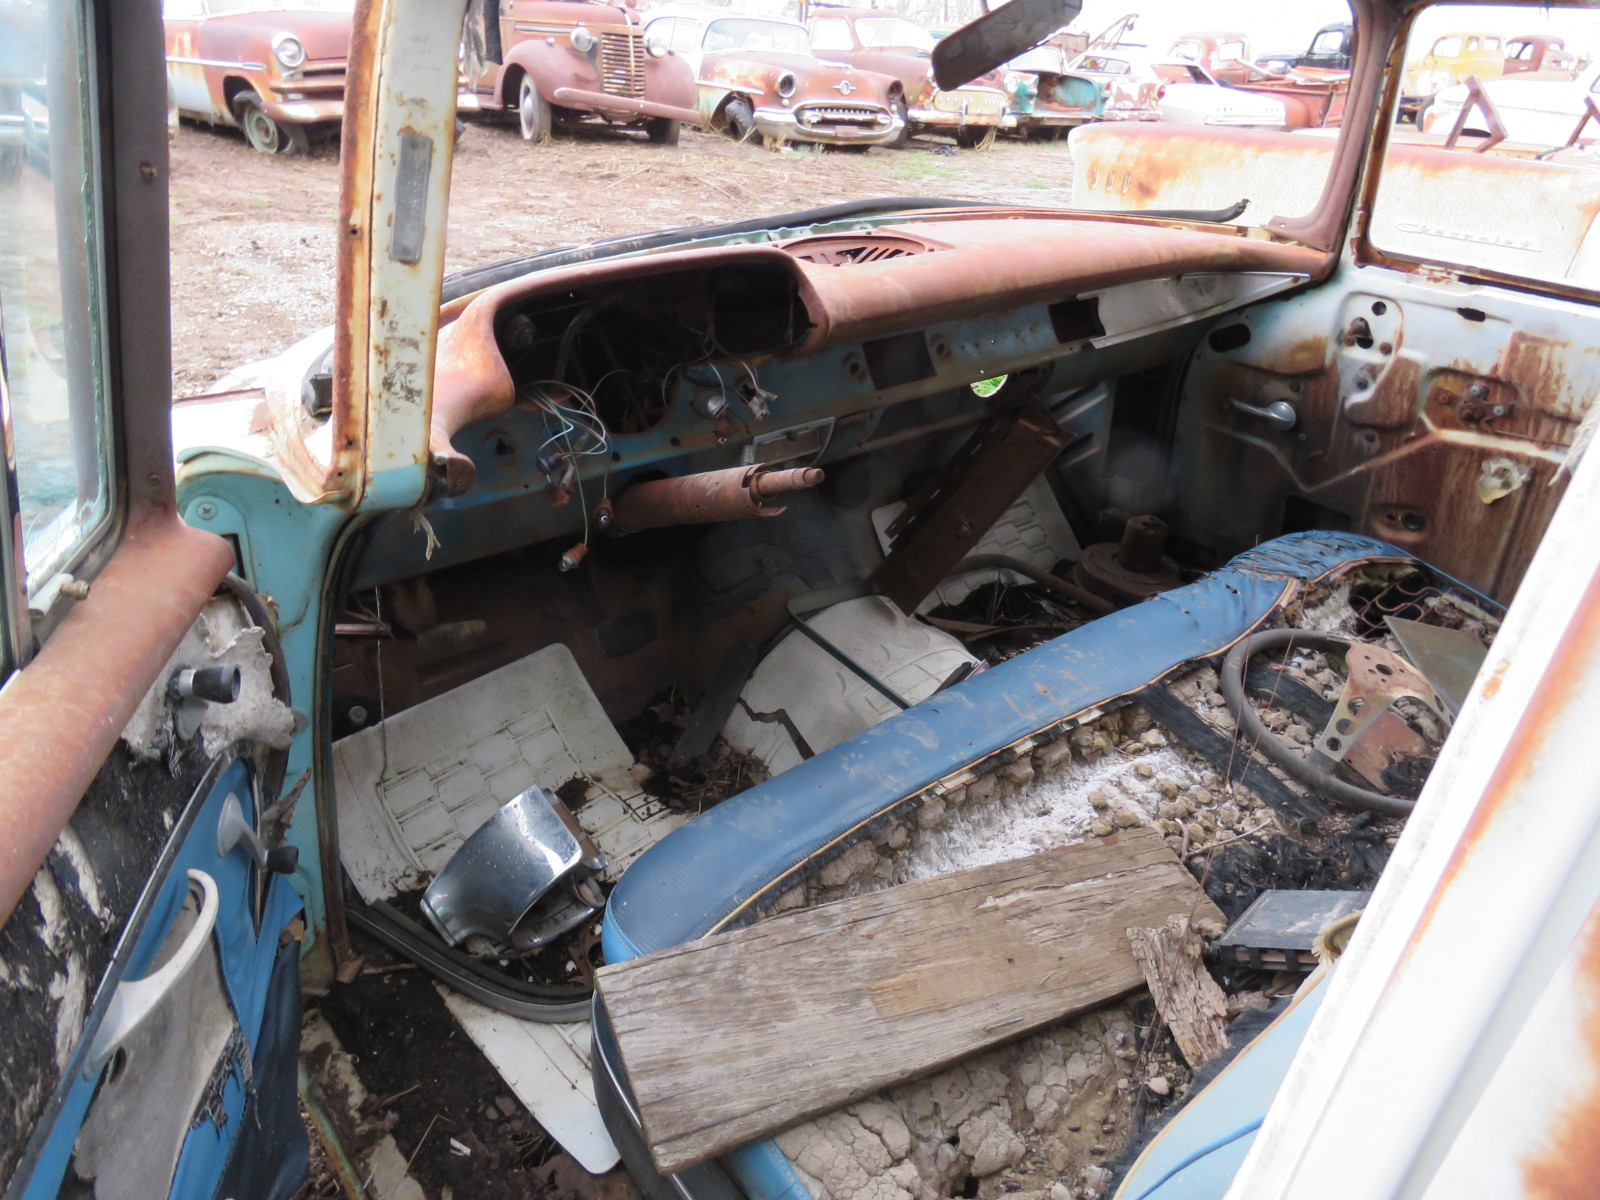 1957 Chevrolet 4dr Sedan for parts VC57K132159 - Image 4